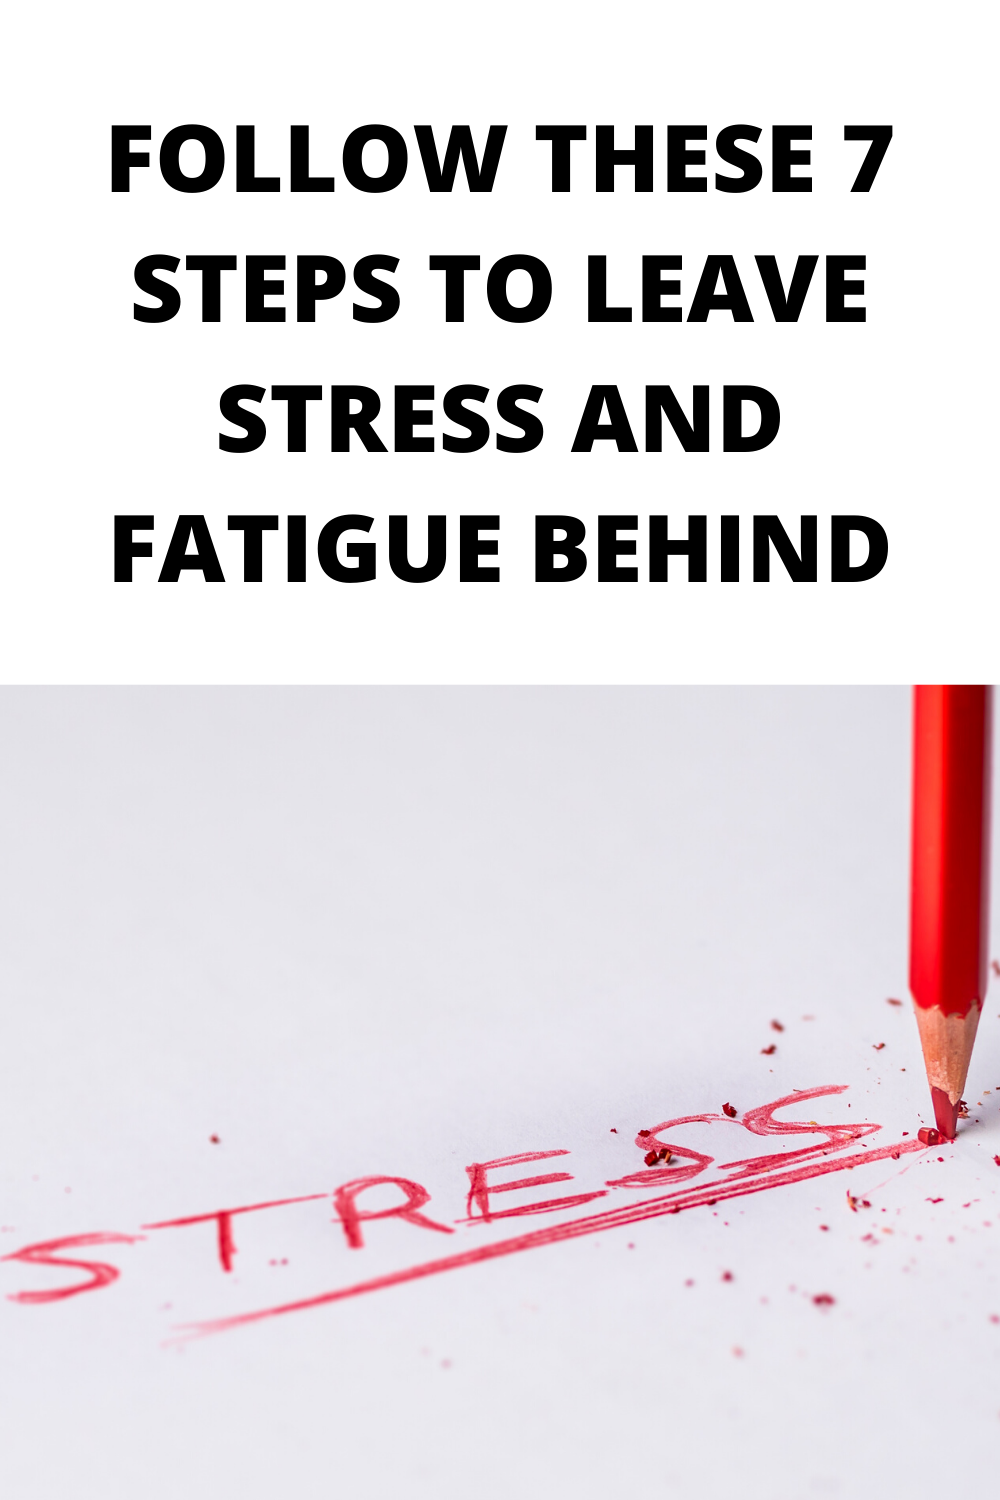 Follow these Seven Steps to Leave Stress and Fatigue Behind